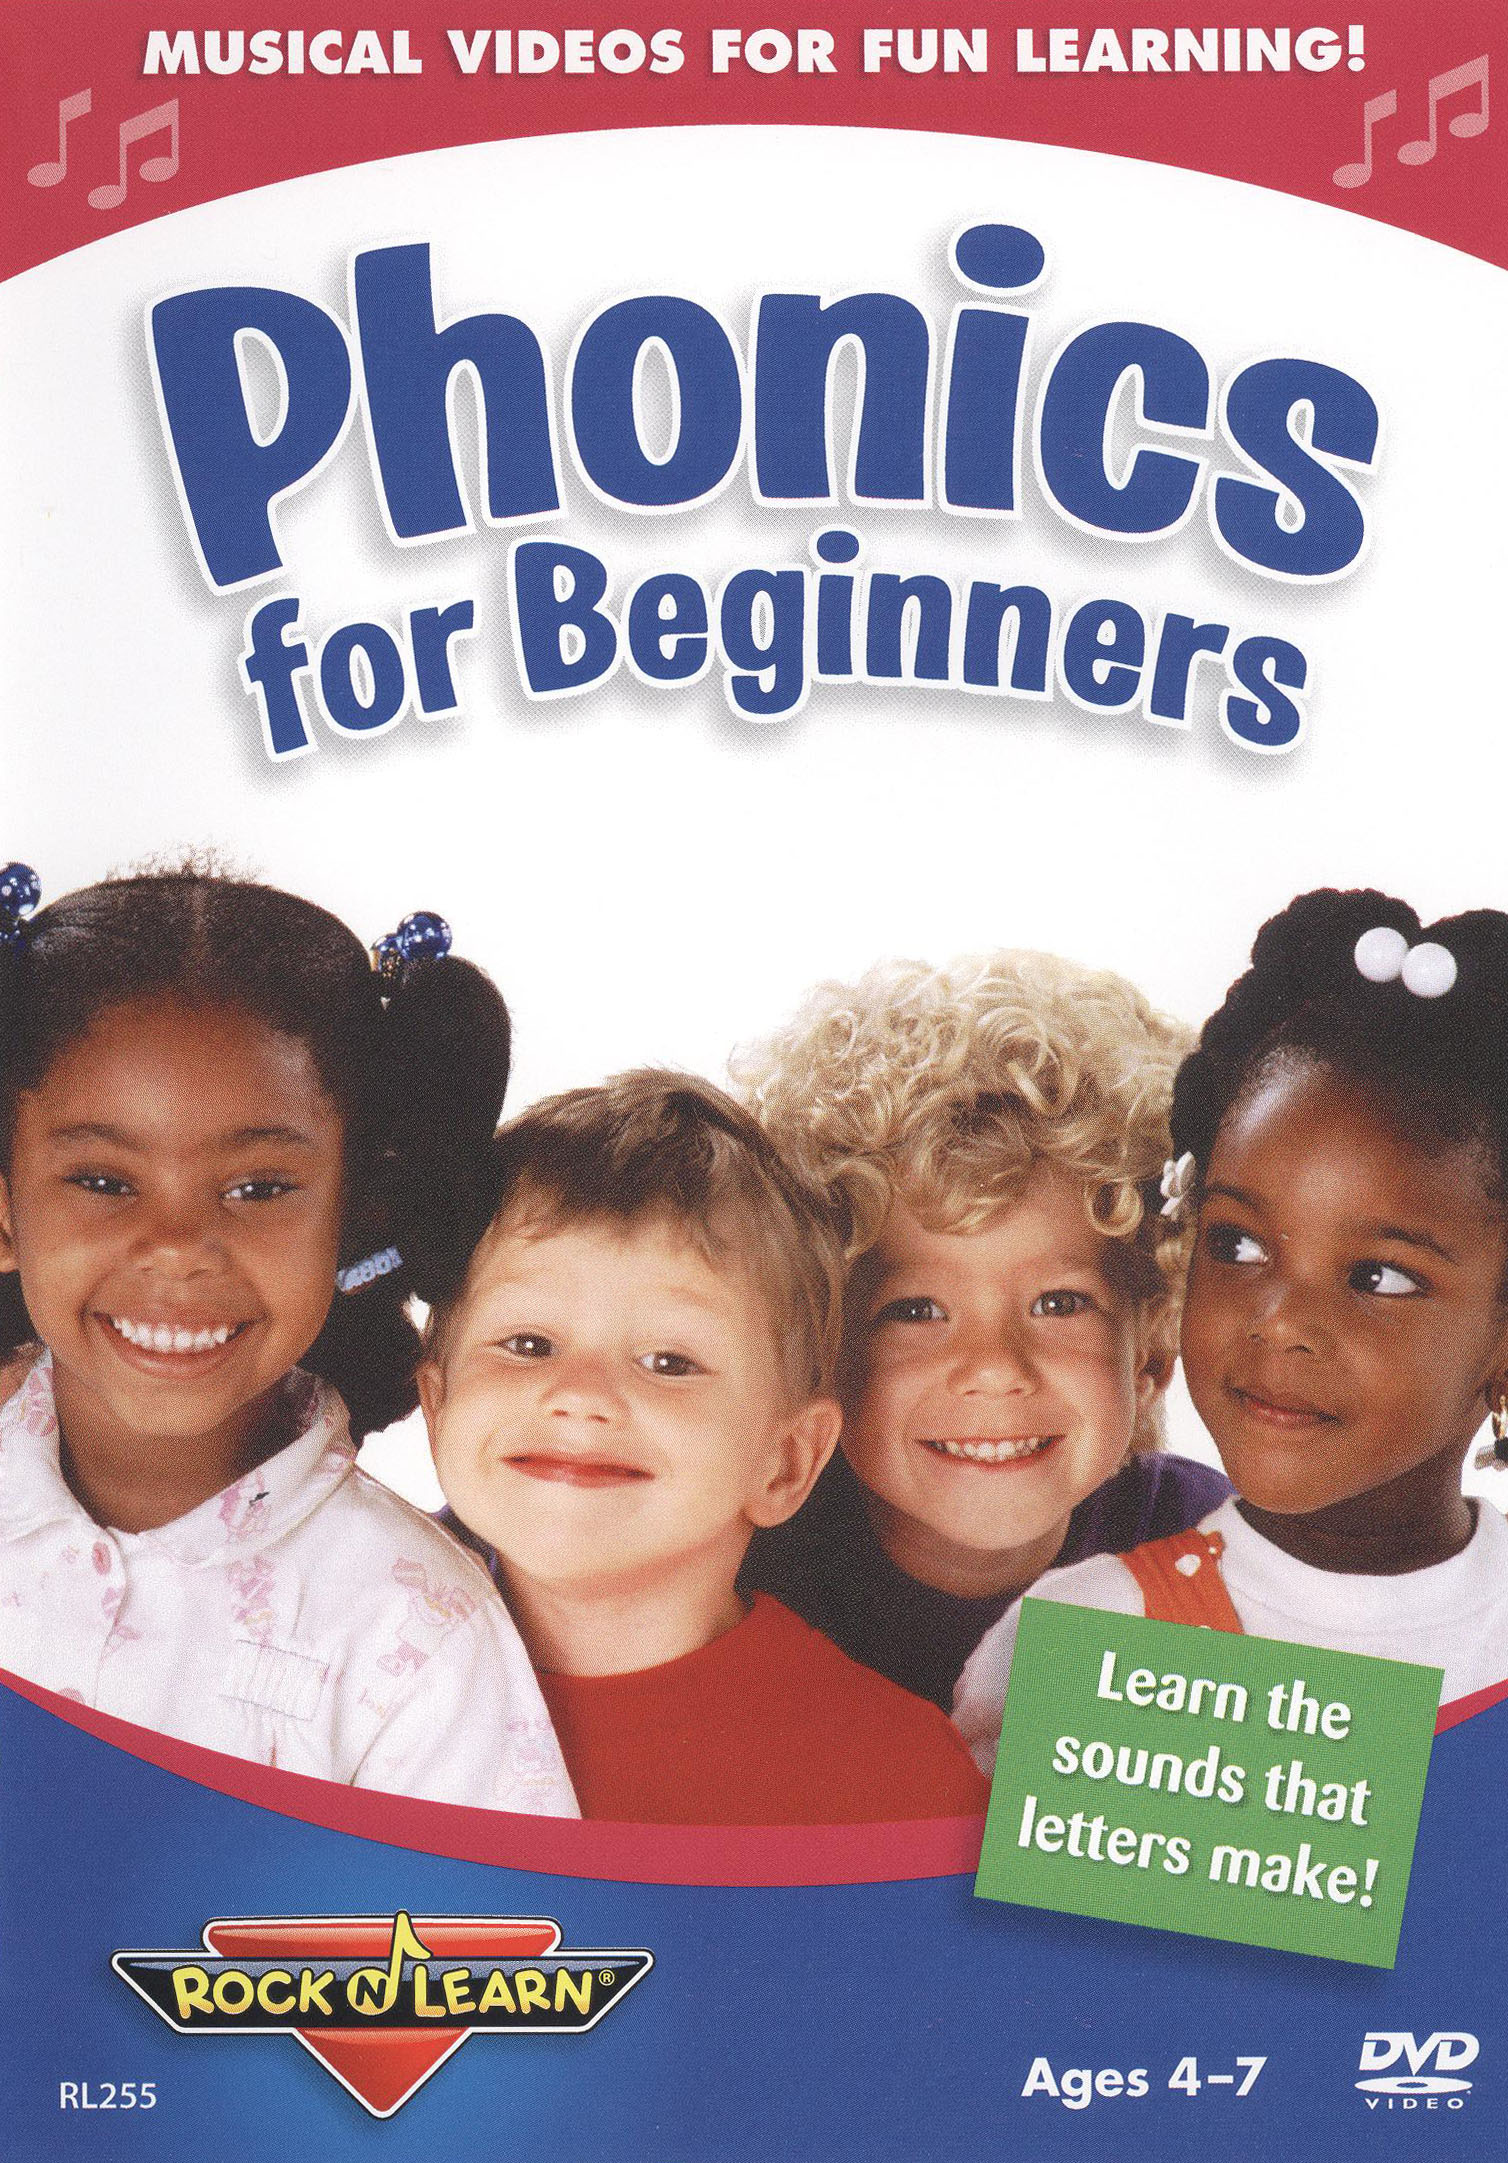 Amazon.com: Customer reviews: Rock 'N Learn: Phonics & Reading